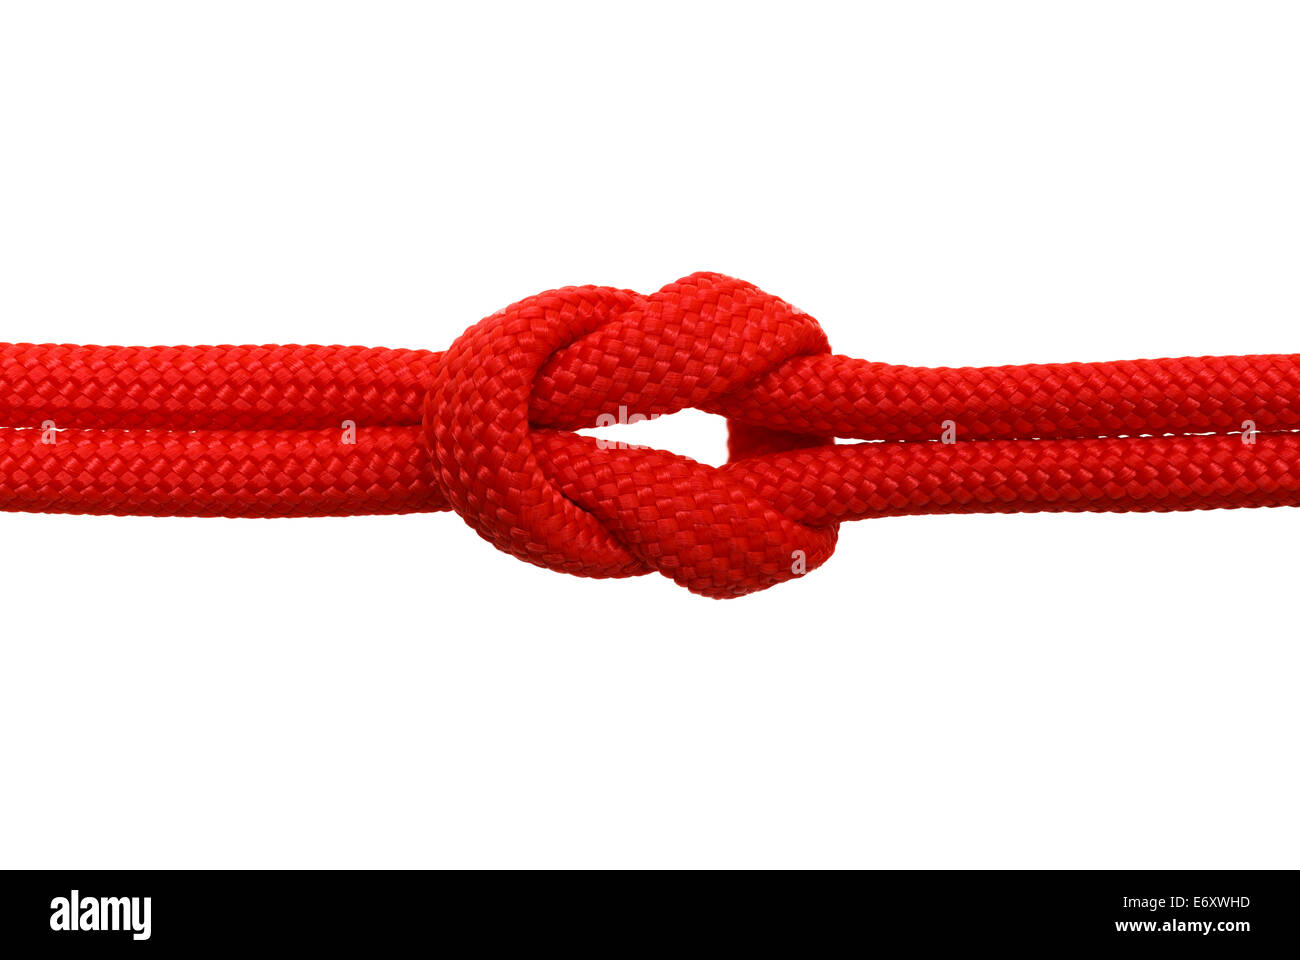 Red Rope in A Knot Isolated on White Background. - Stock Image